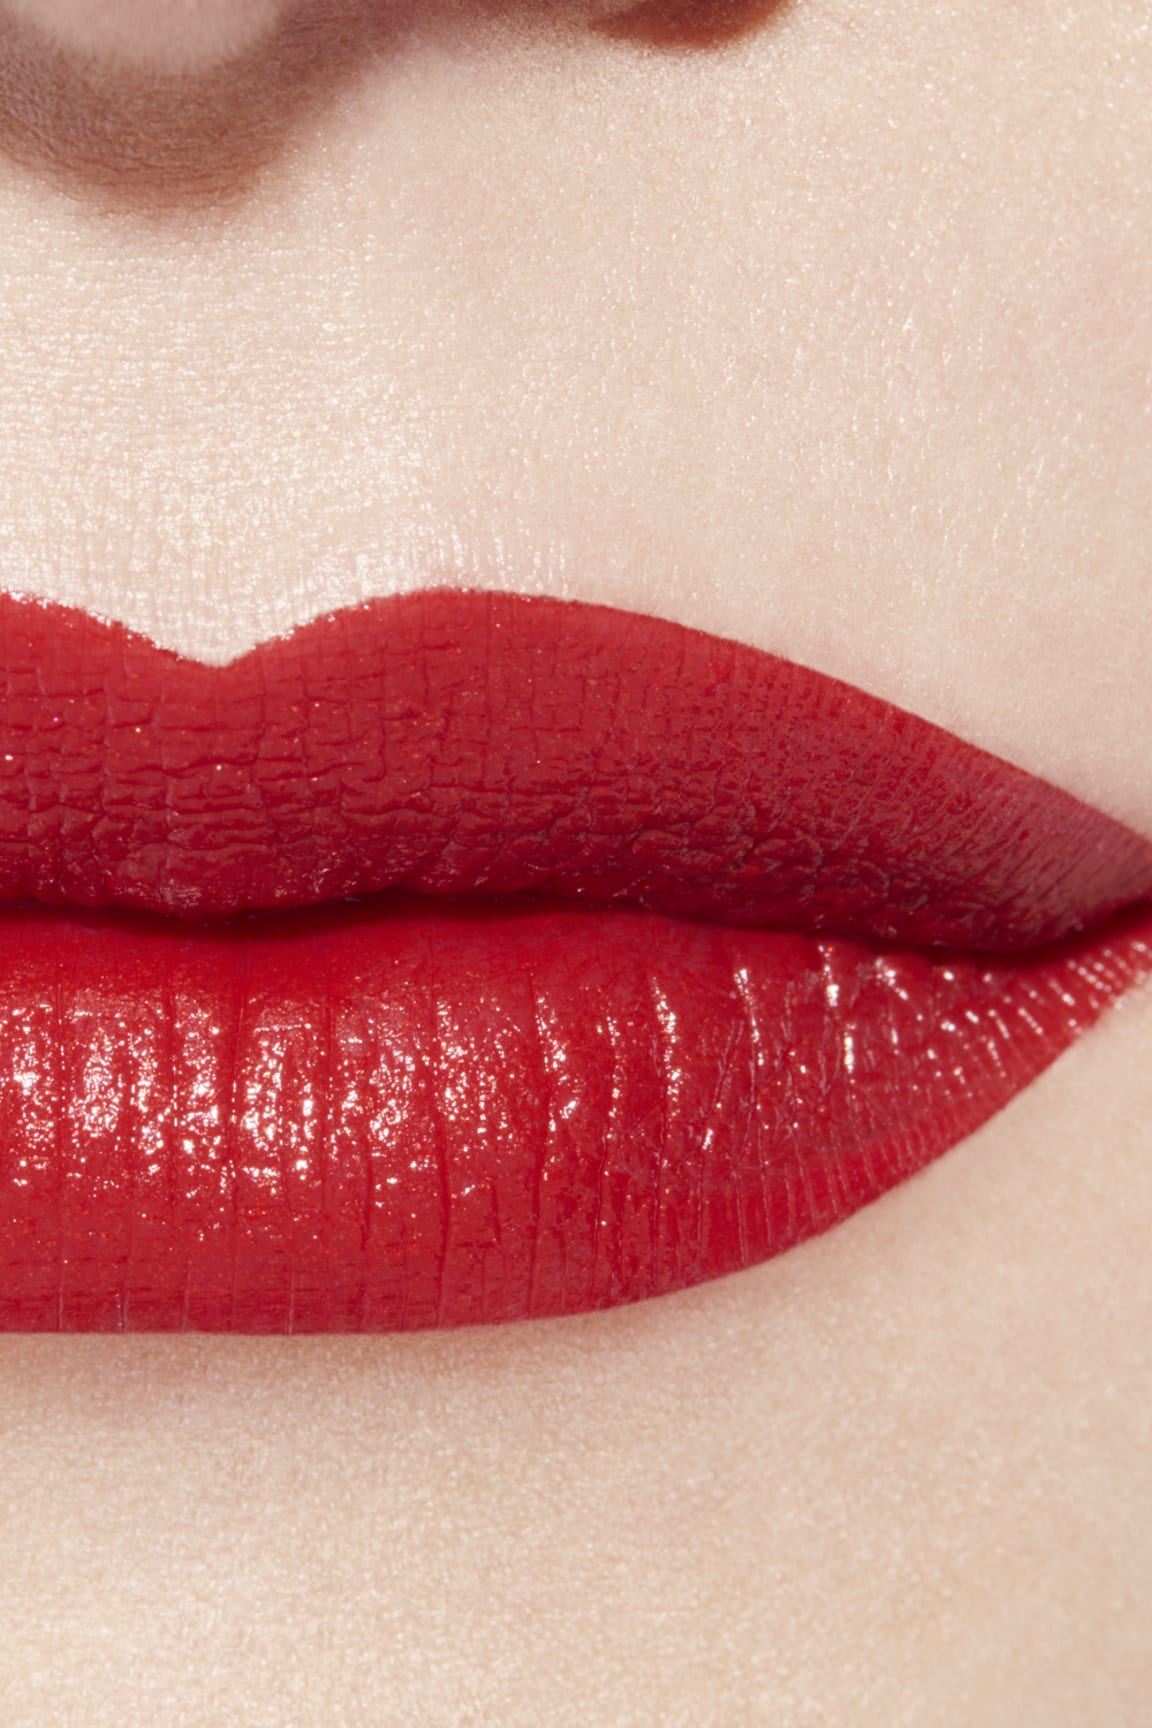 Application makeup visual 3 - ROUGE ALLURE 127 - ROUGE D'OR